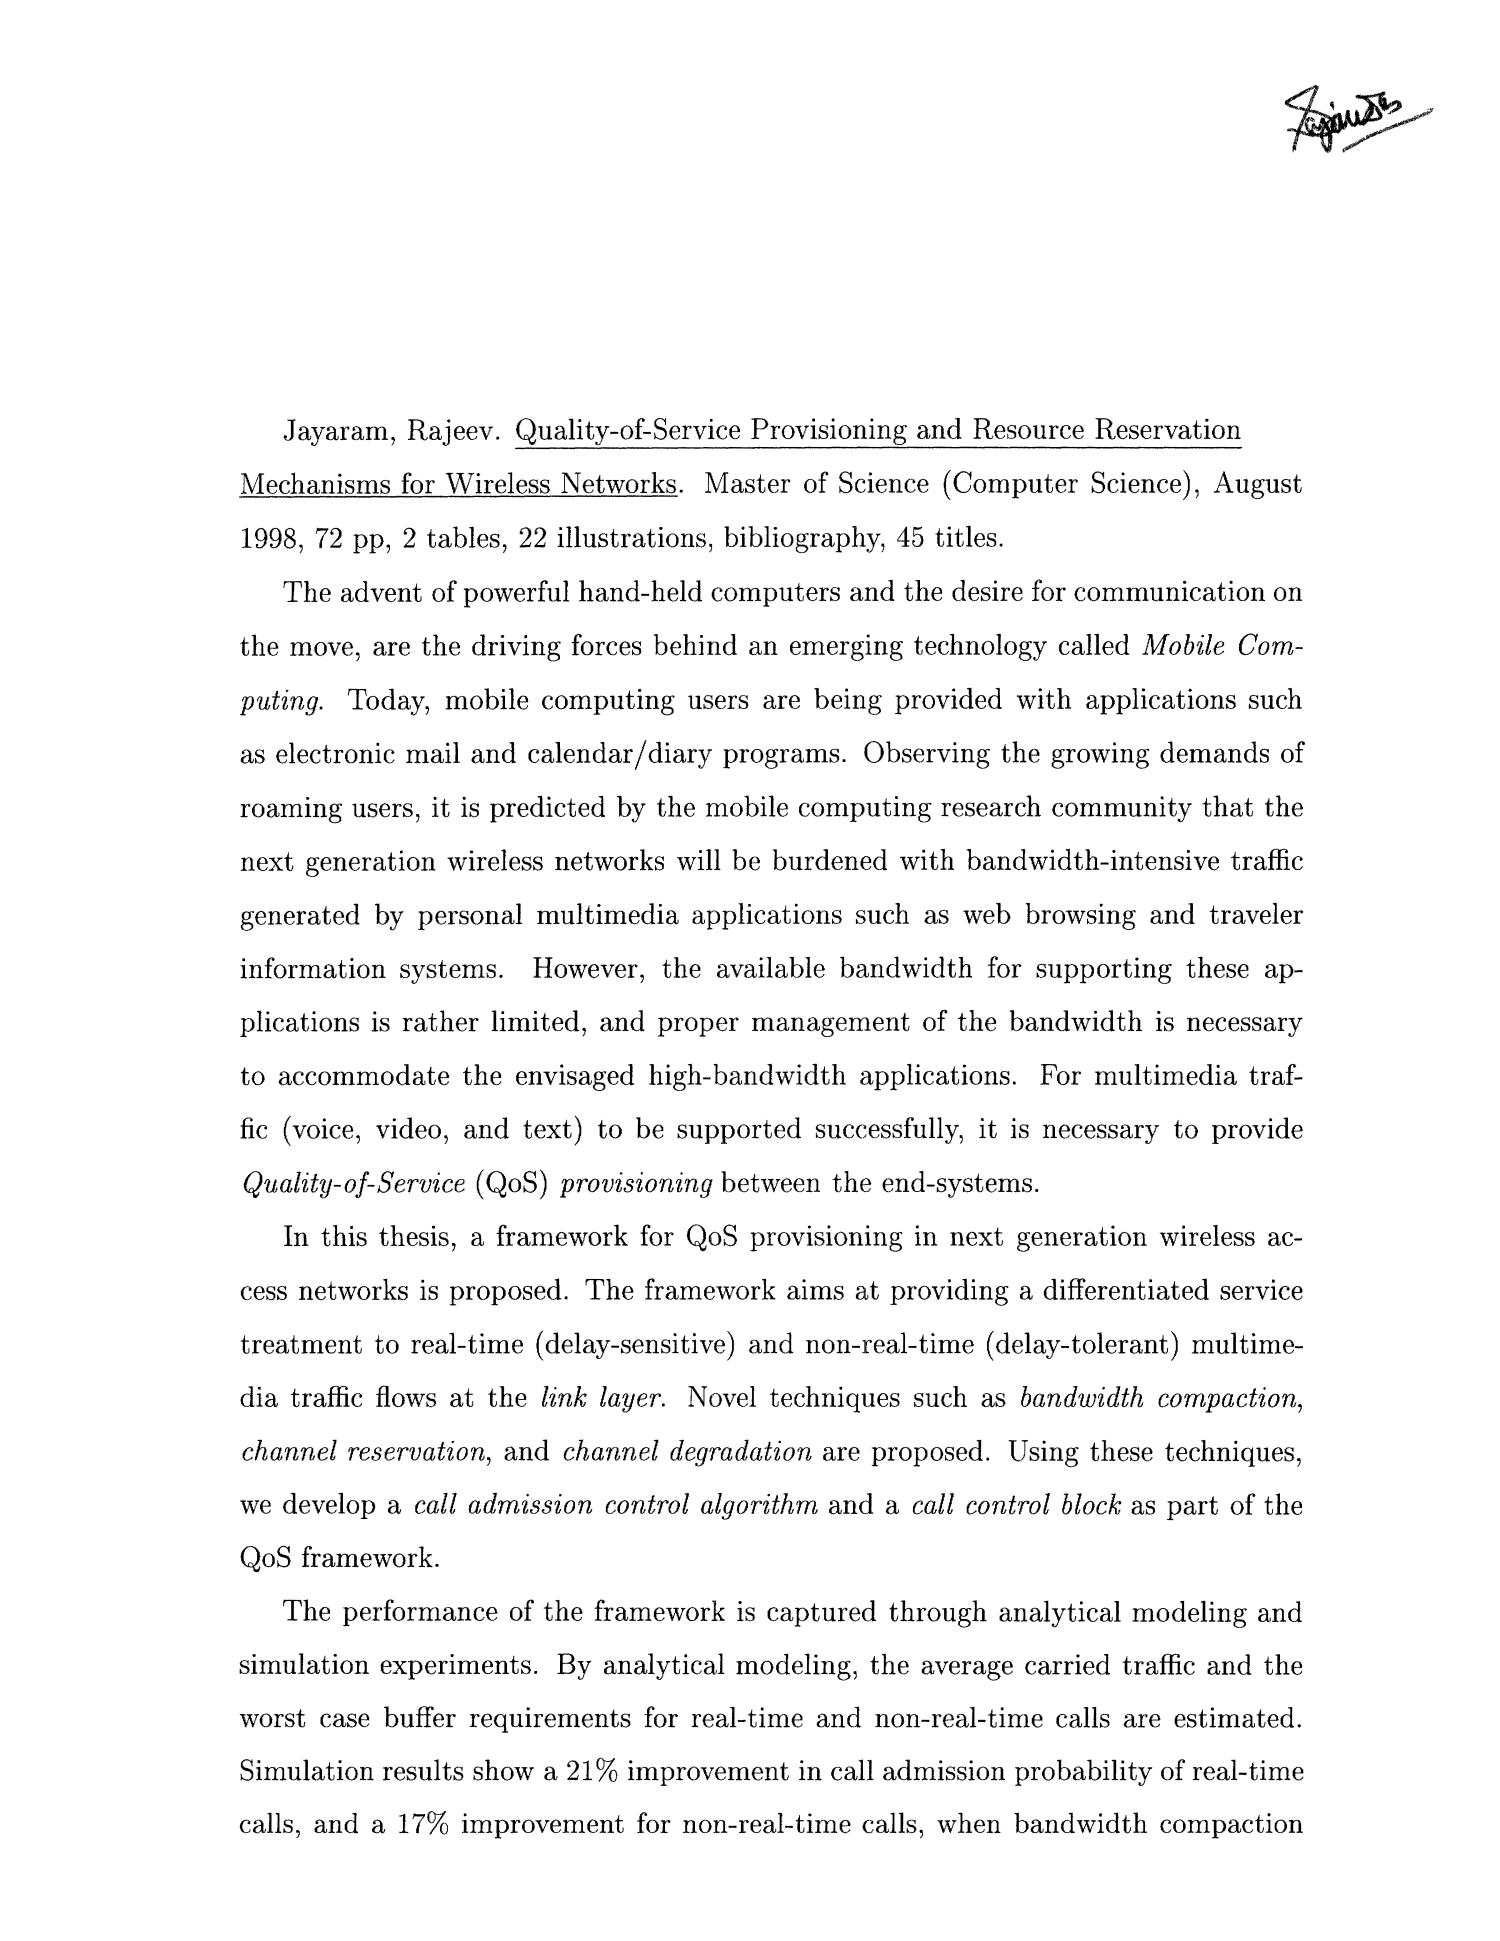 Quality-of-Service Provisioning and Resource Reservation Mechanisms for Mobile Wireless Networks                                                                                                      None